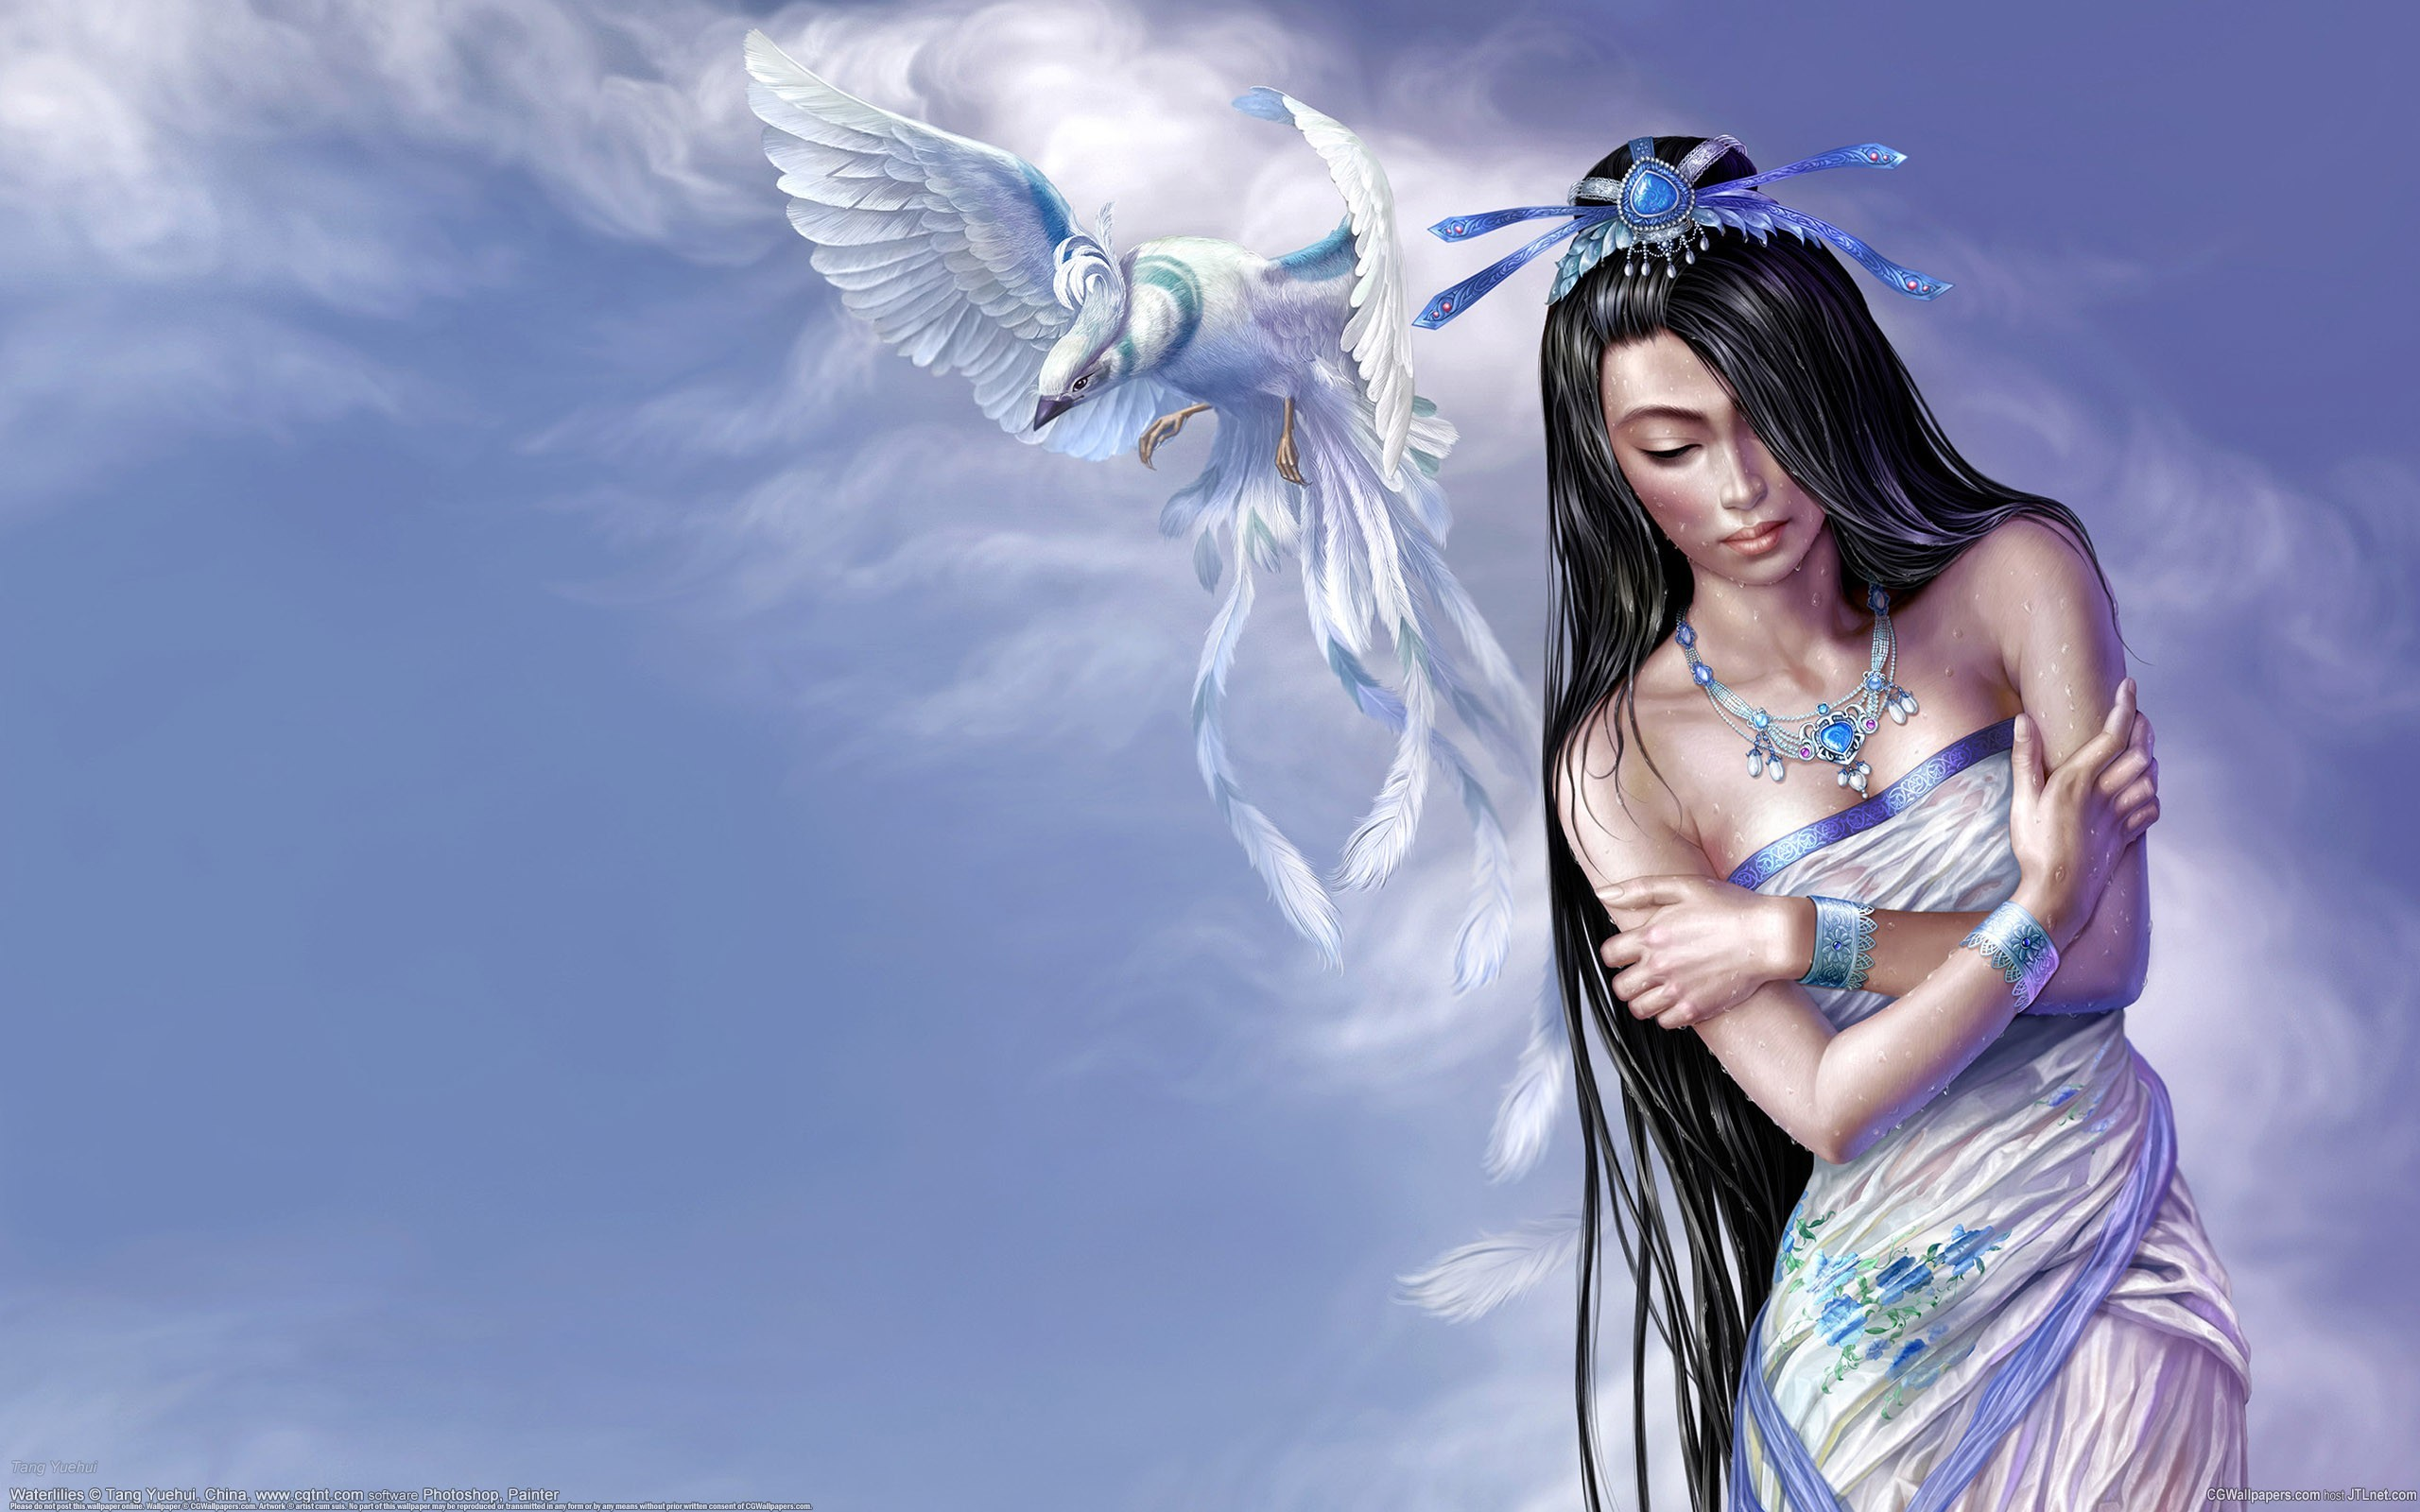 woman Birds wet artwork HD Wallpaper